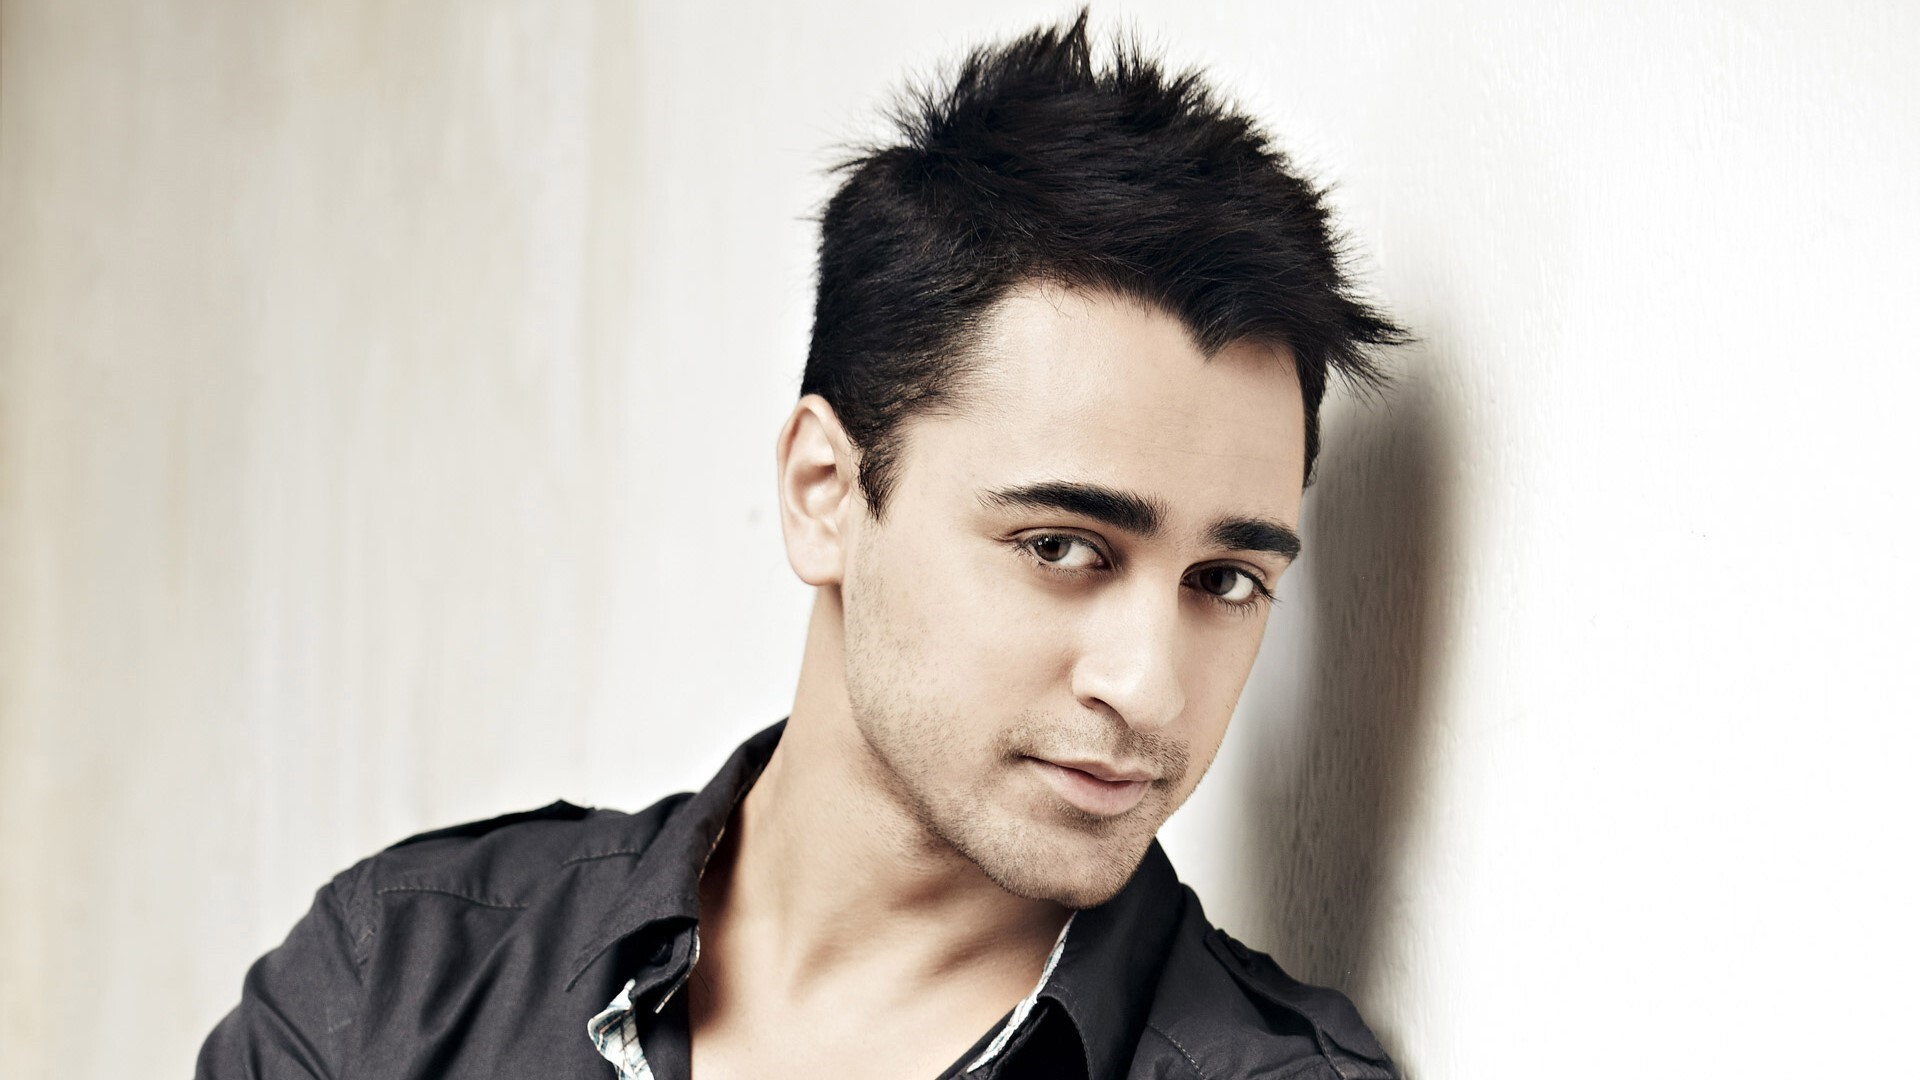 Popular Bollywood Actor Imran Khan Hd Images Hd Wallpapers